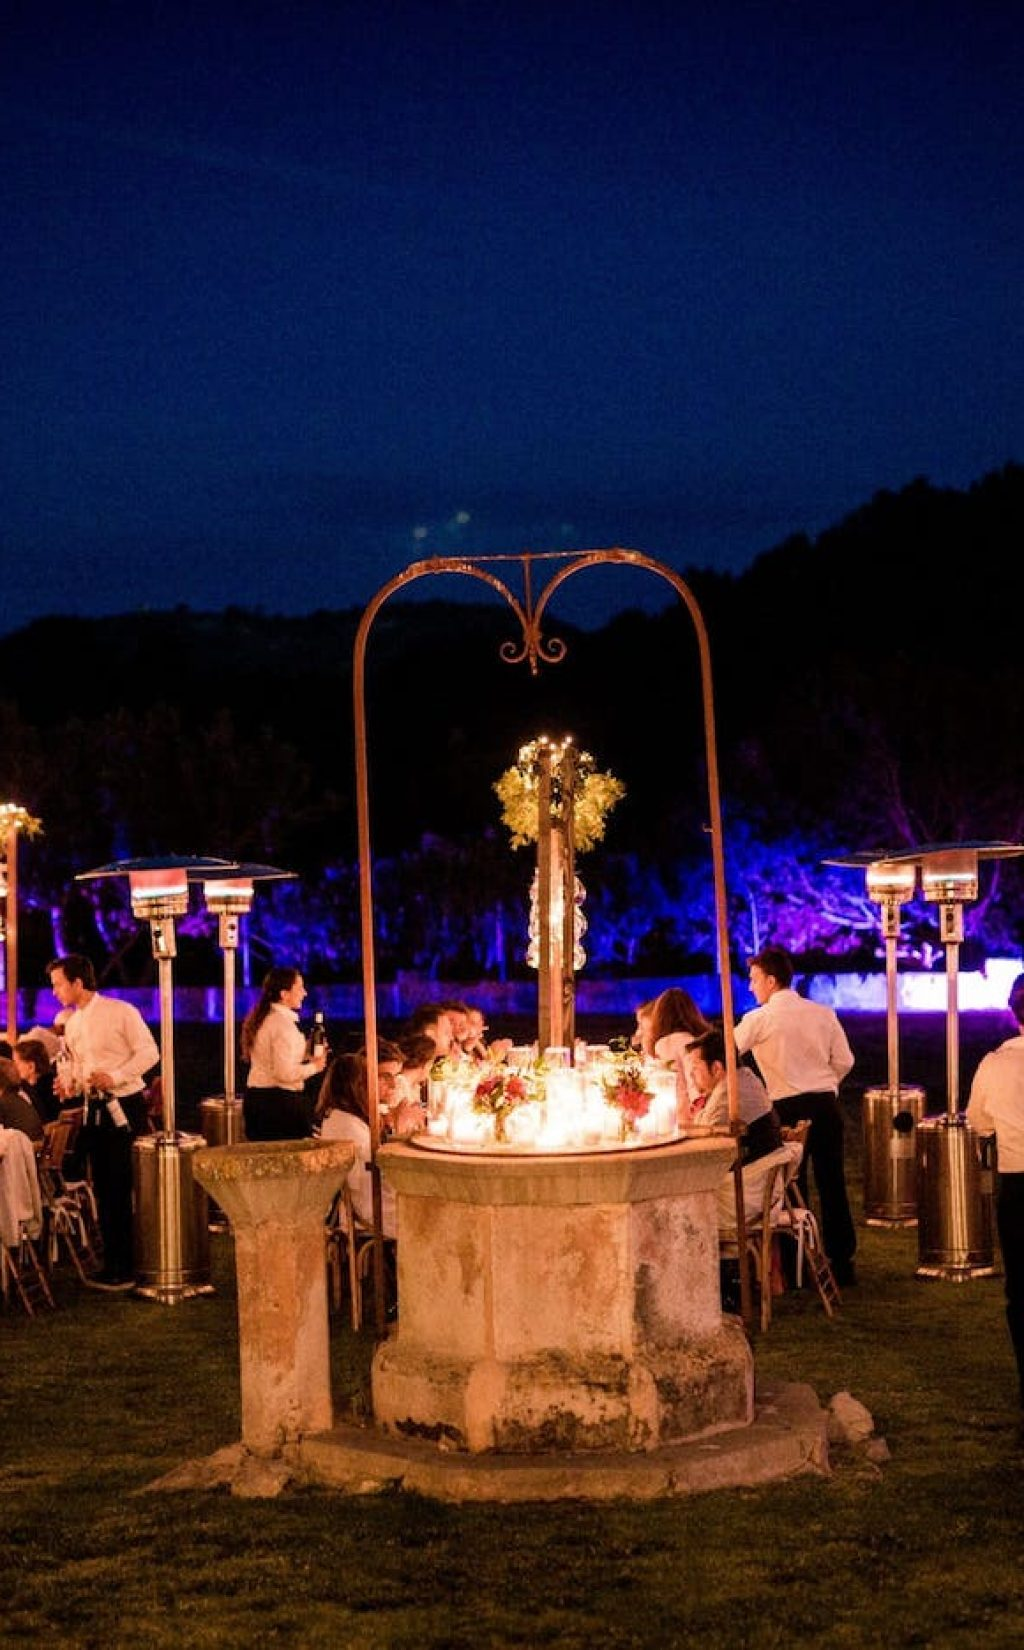 romantic wedding dinner in the Biniorella countryside finca in Mallorca